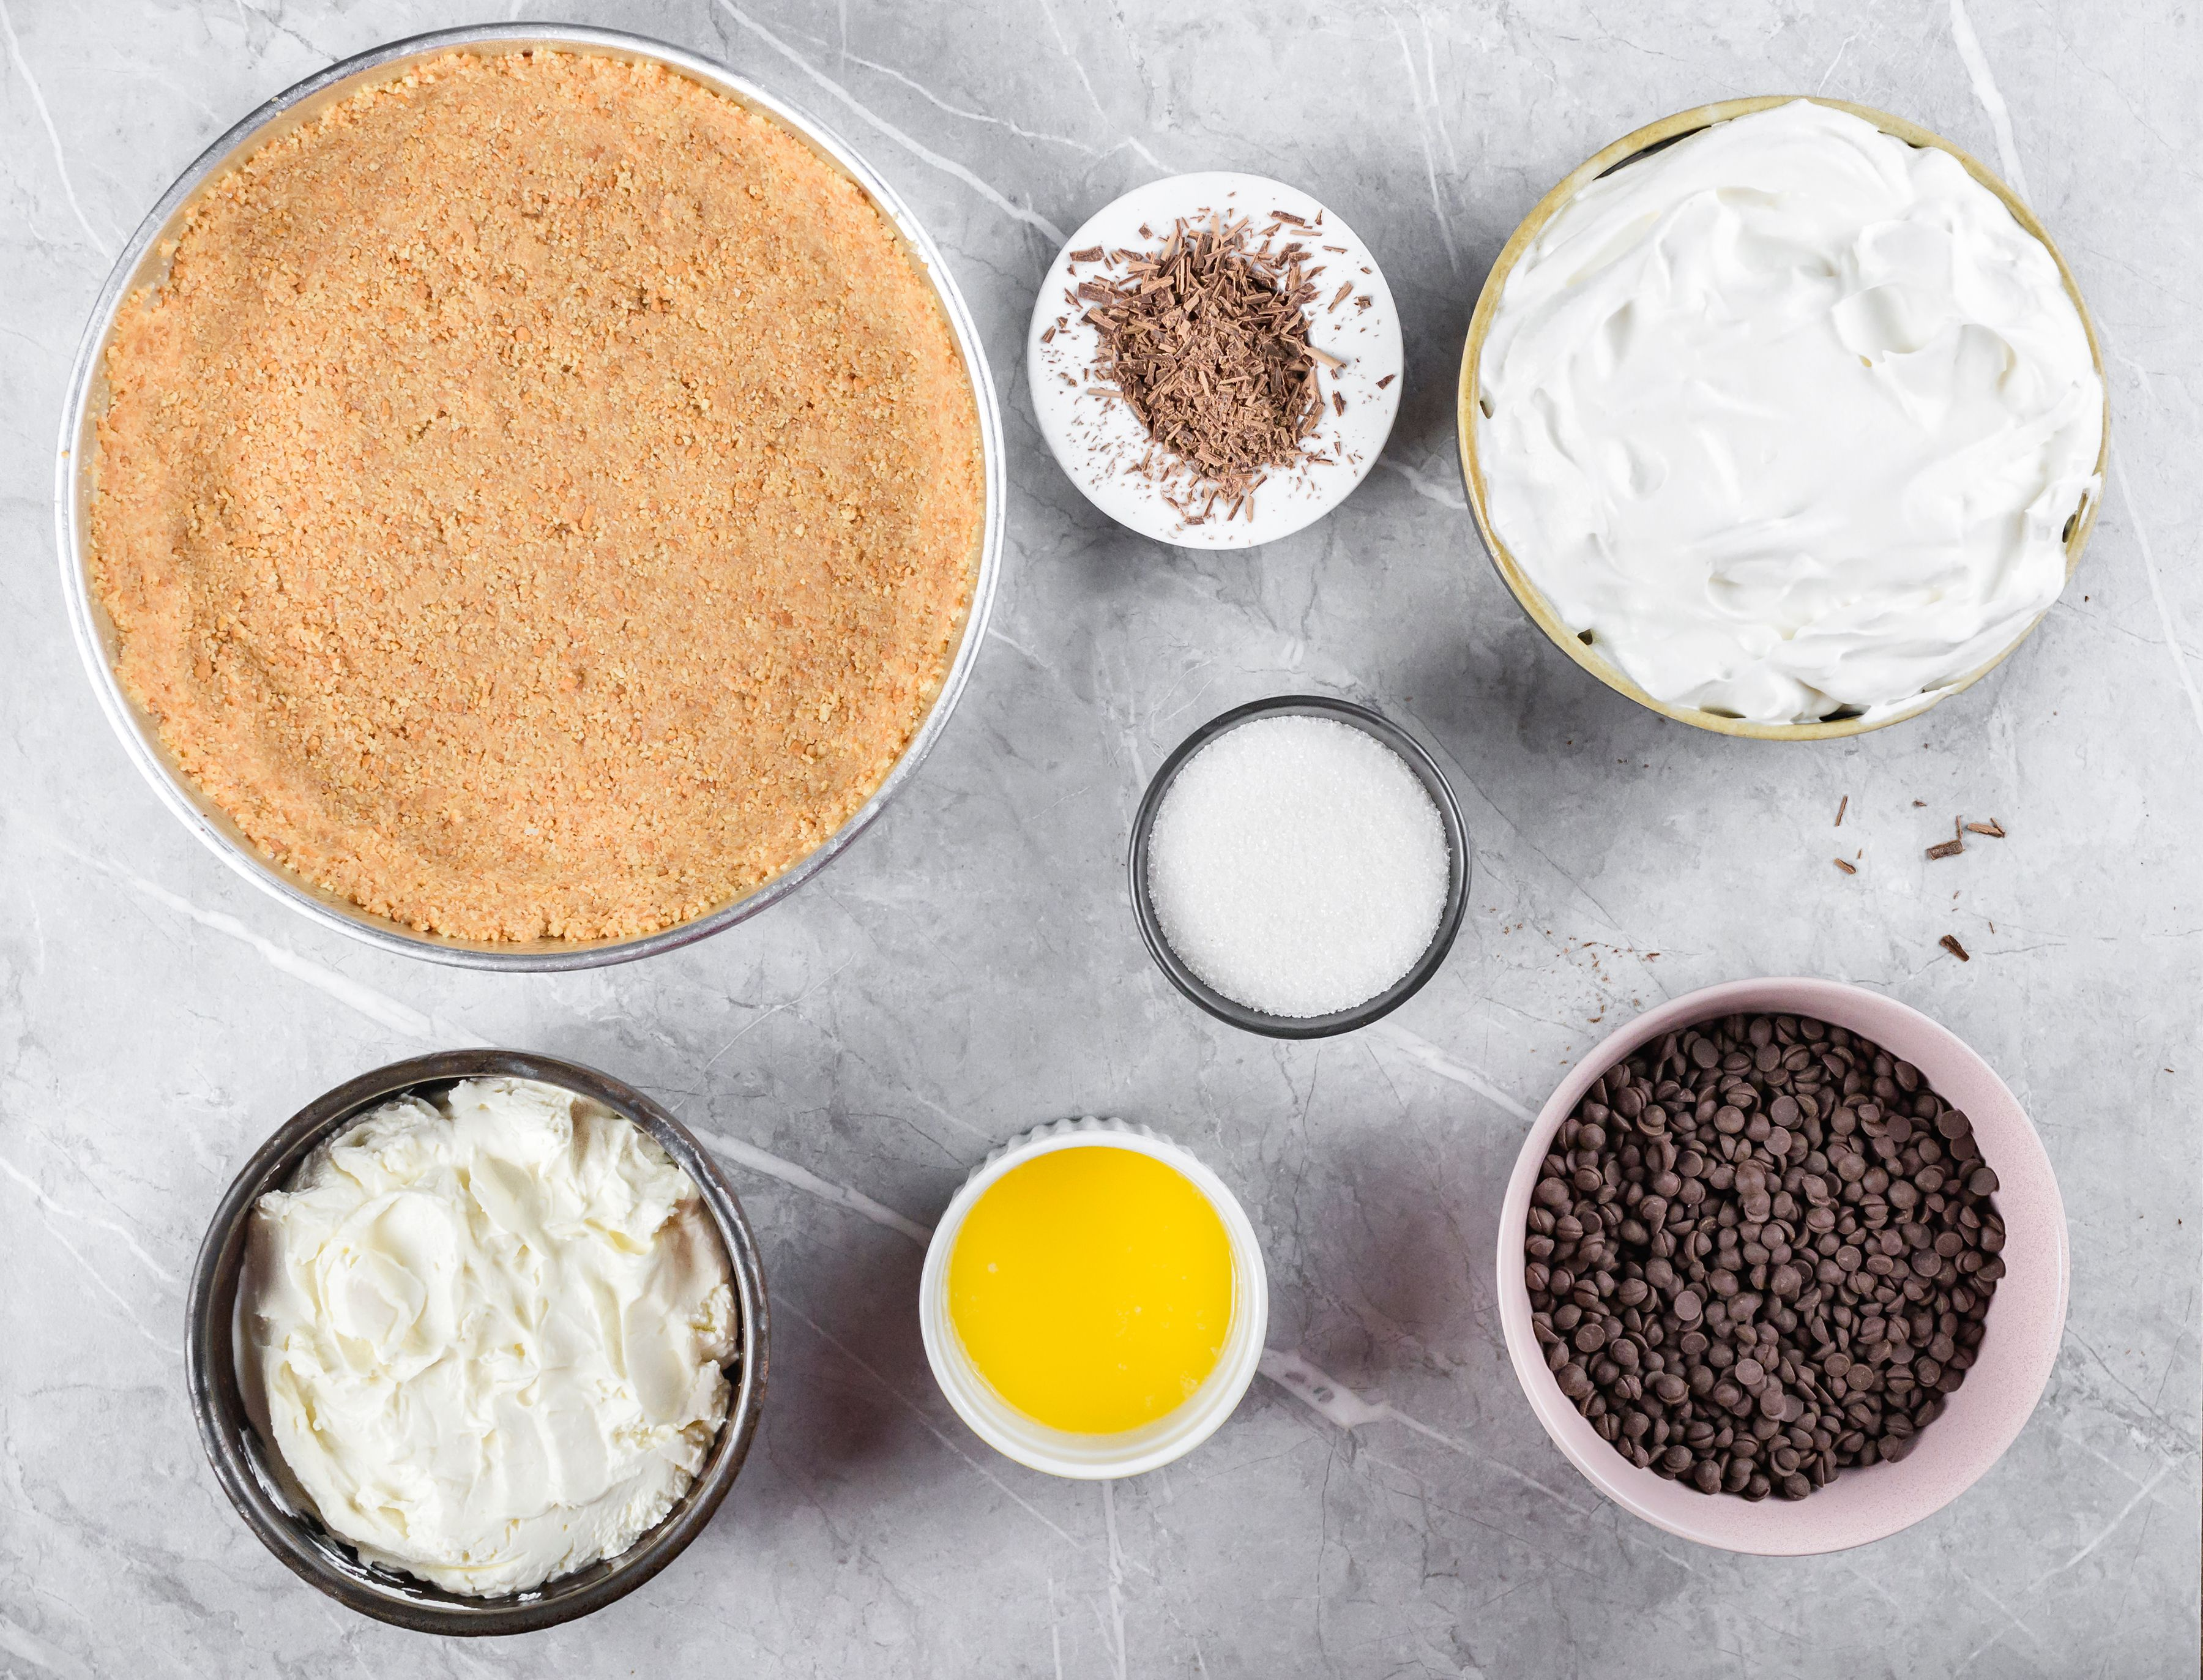 Ingredients for no bake chocolate cheesecake